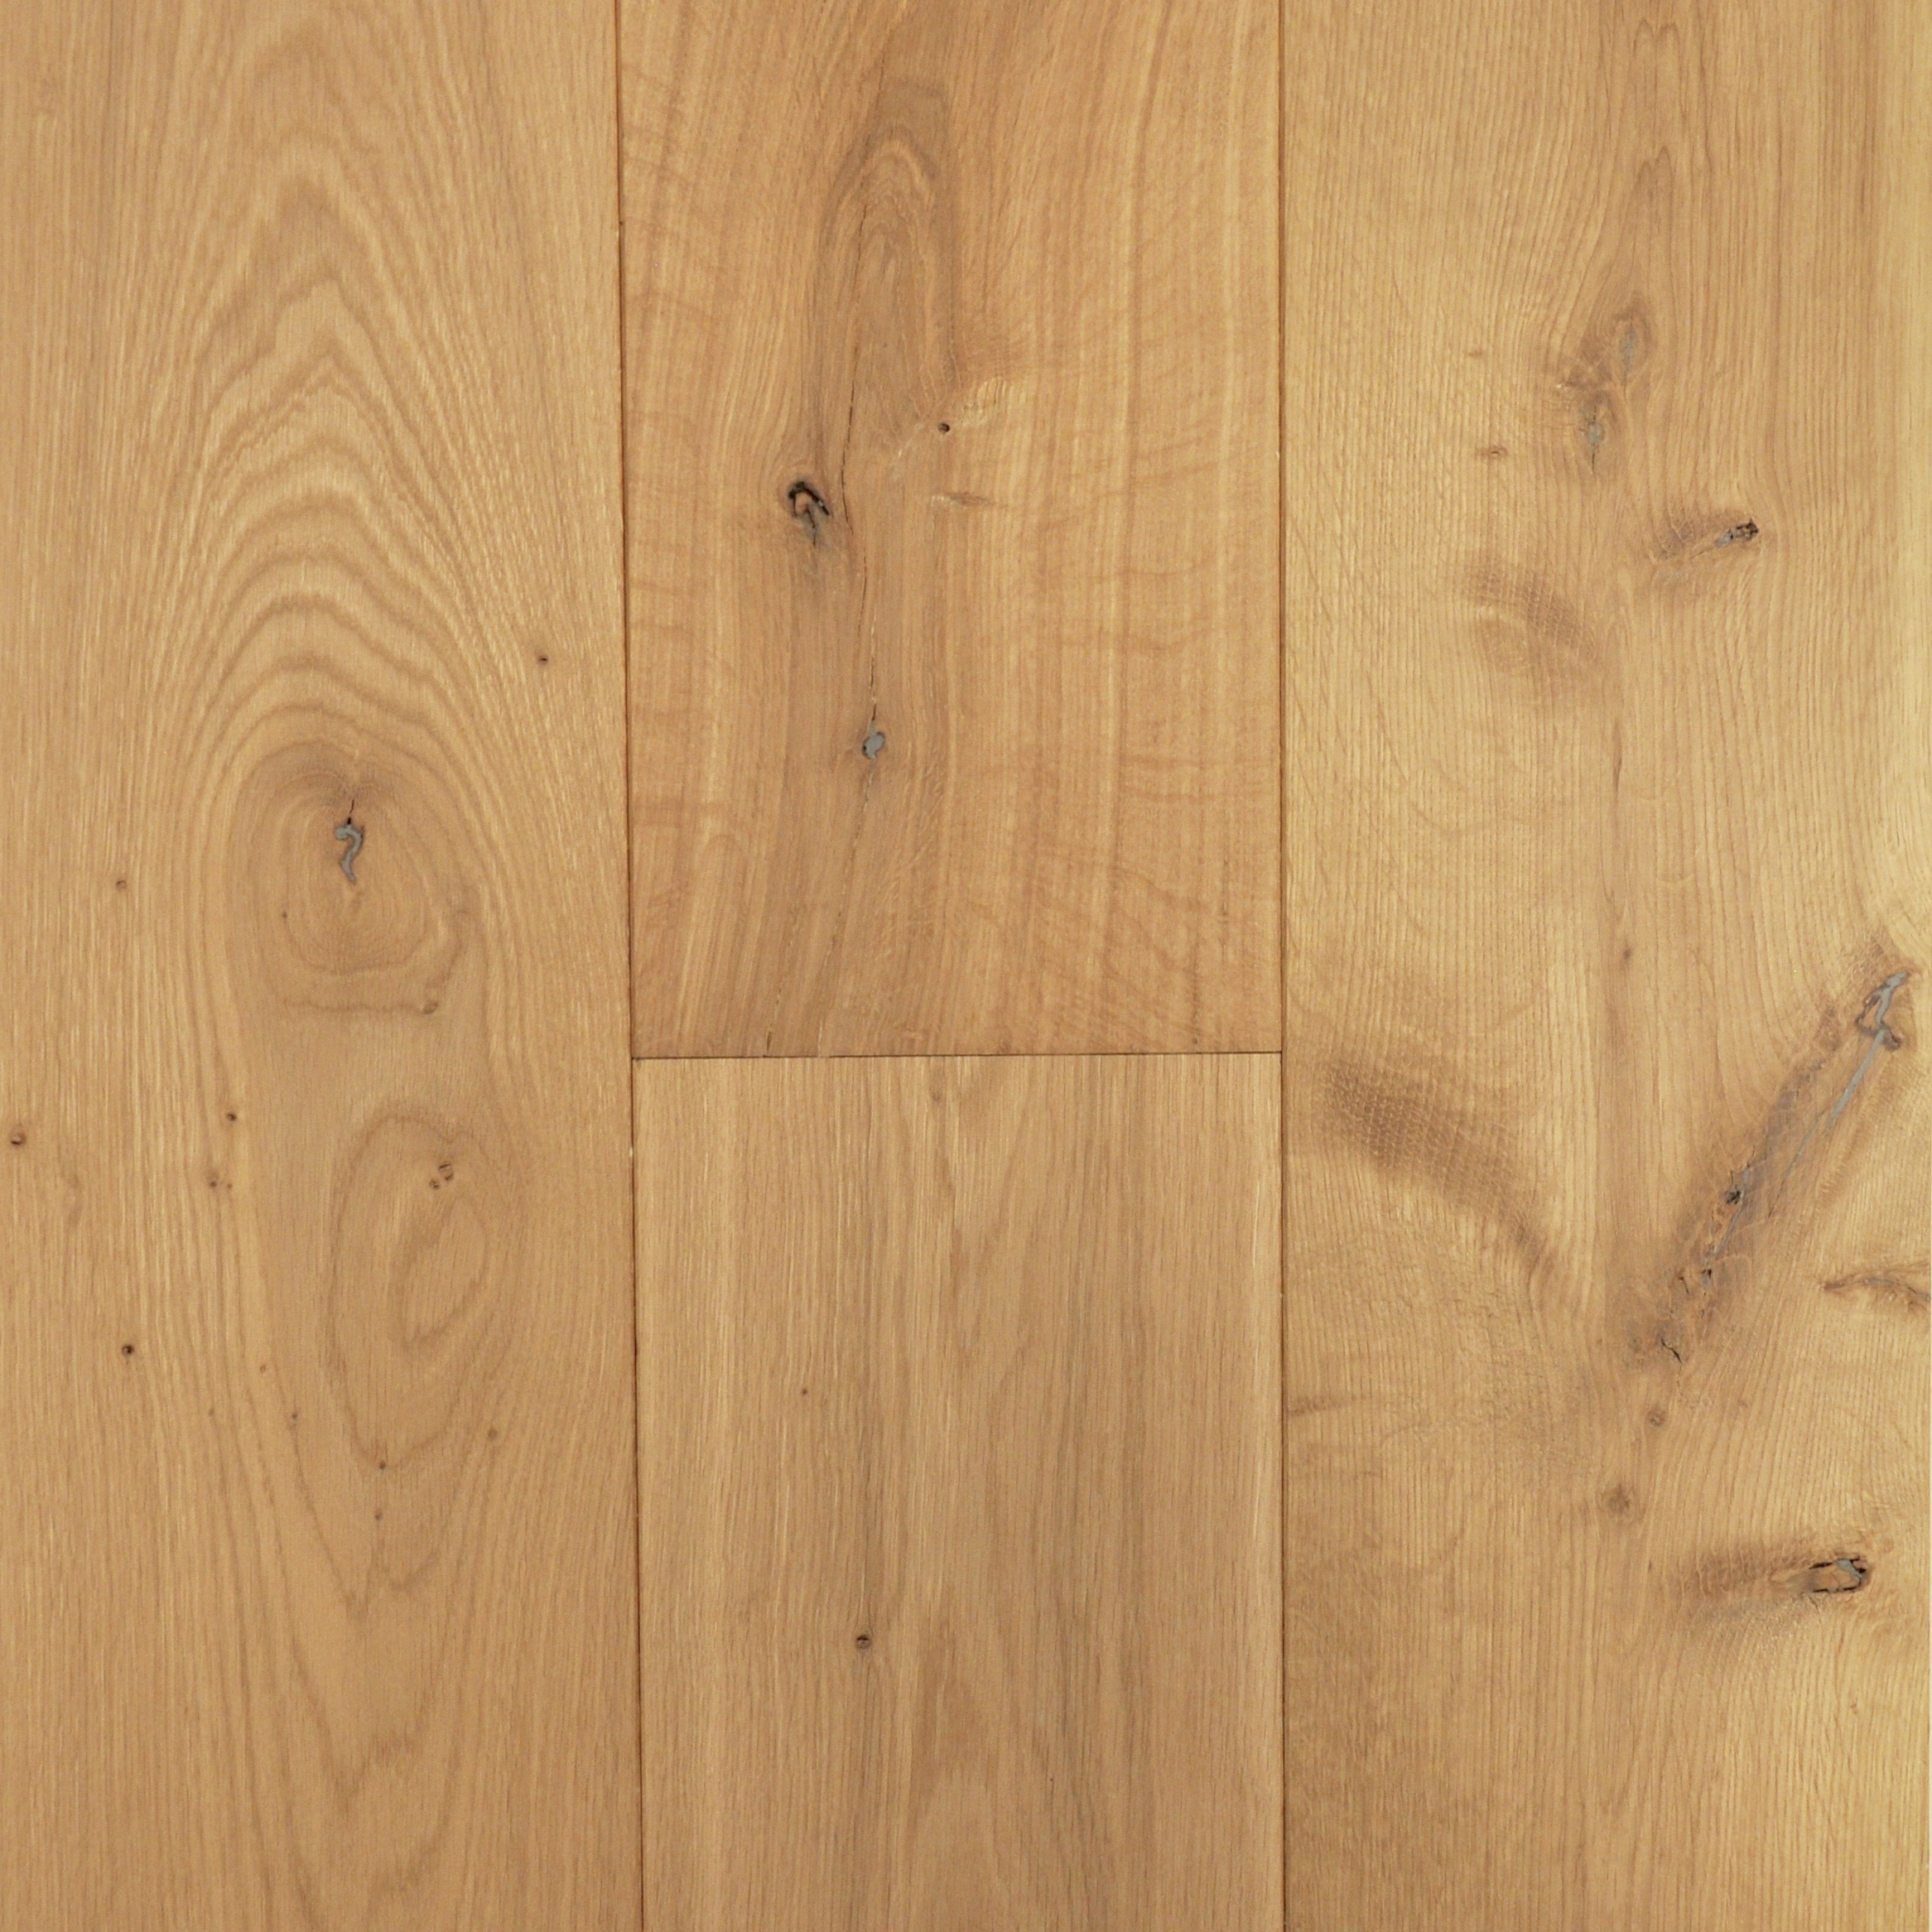 Sand dune french euro oak french wood floor for Floor in french